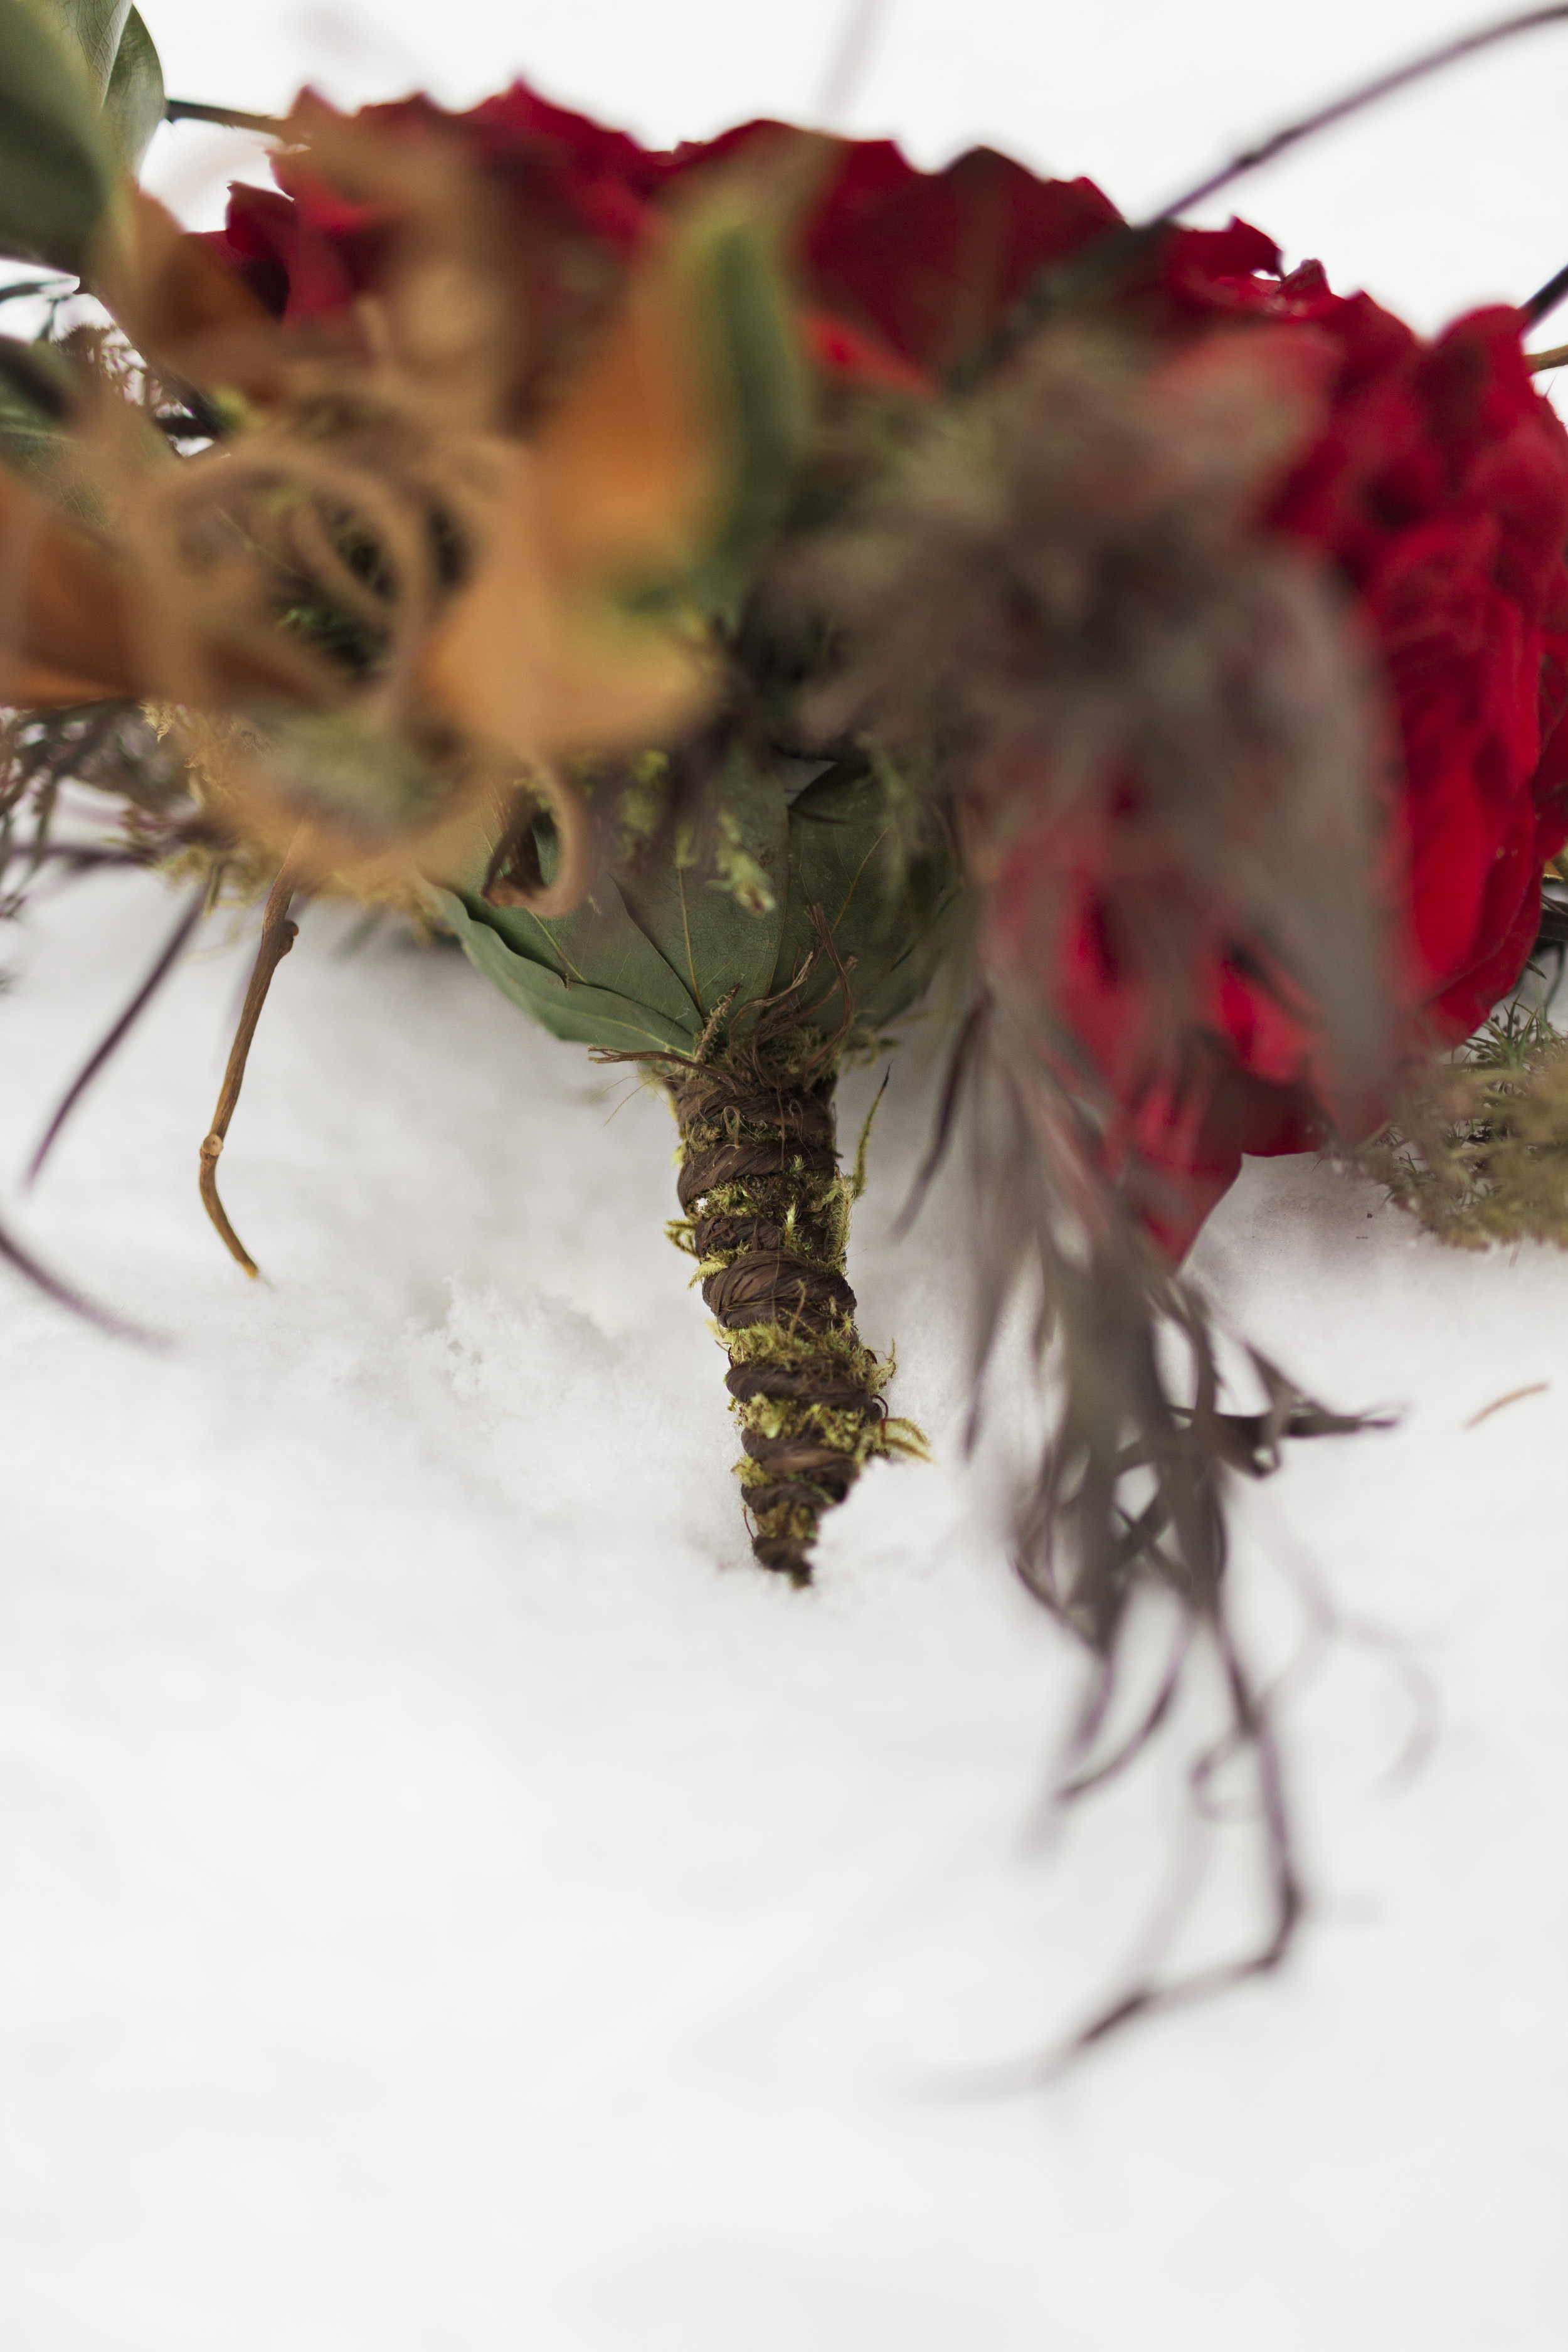 Mossy details on the bouquet handle.